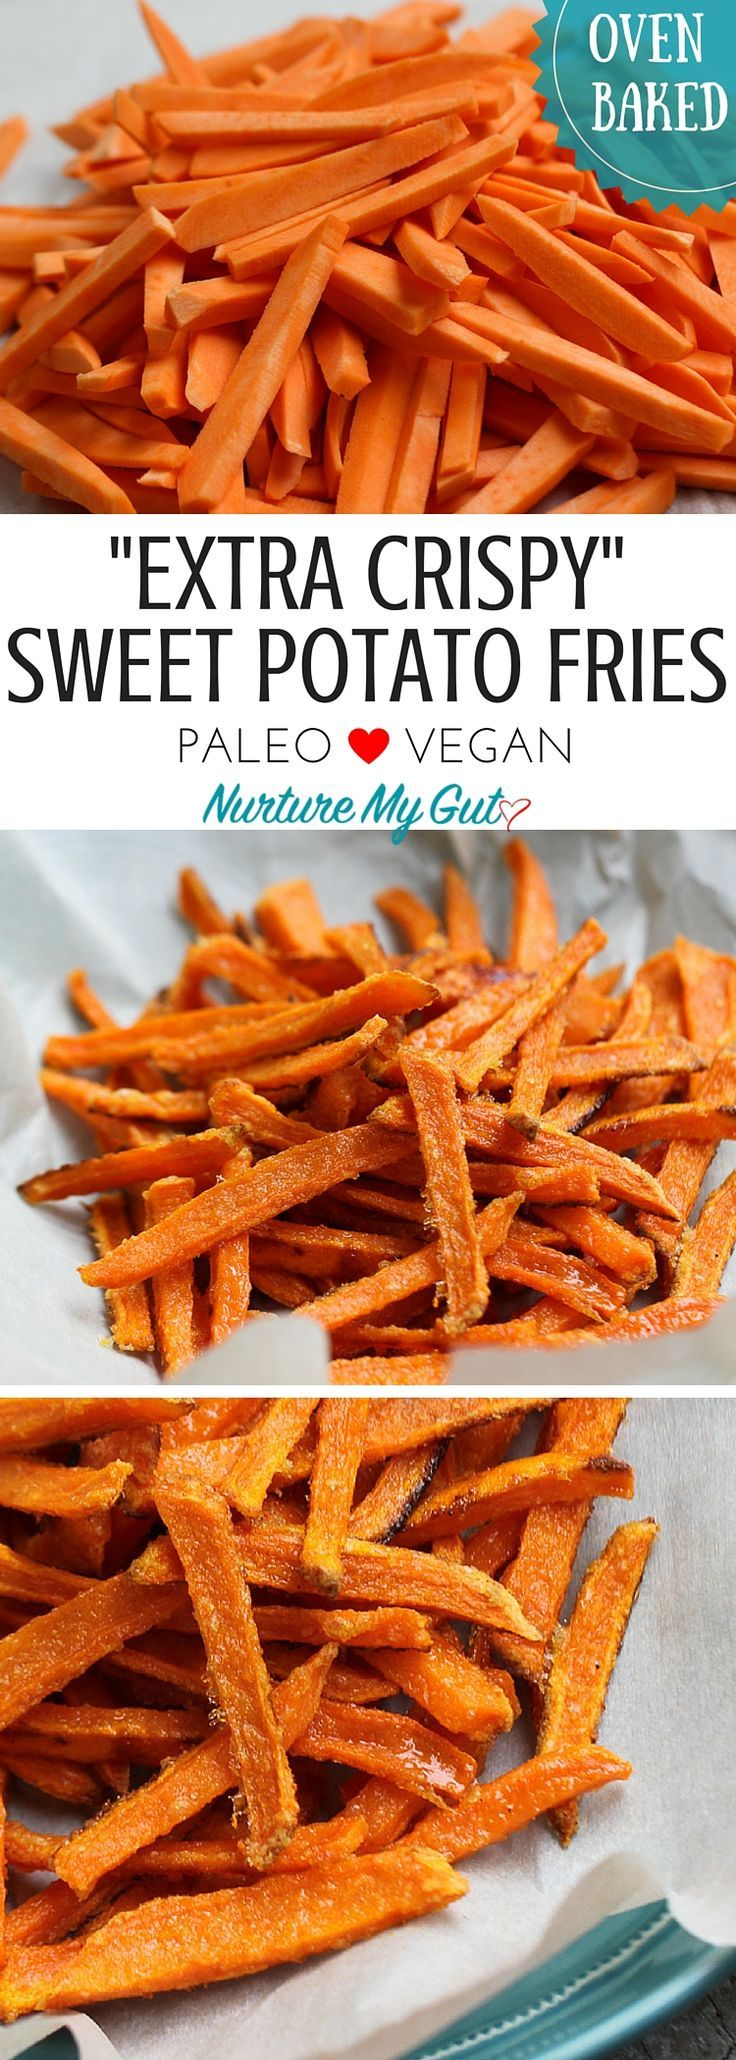 Extra Crispy Baked Sweet Potato Fries.  These fast & easy sweet potato fries are sure to be a family favorite!  Ready in less than 25 minutes.  Paleo, Gluten Free, Vegan.